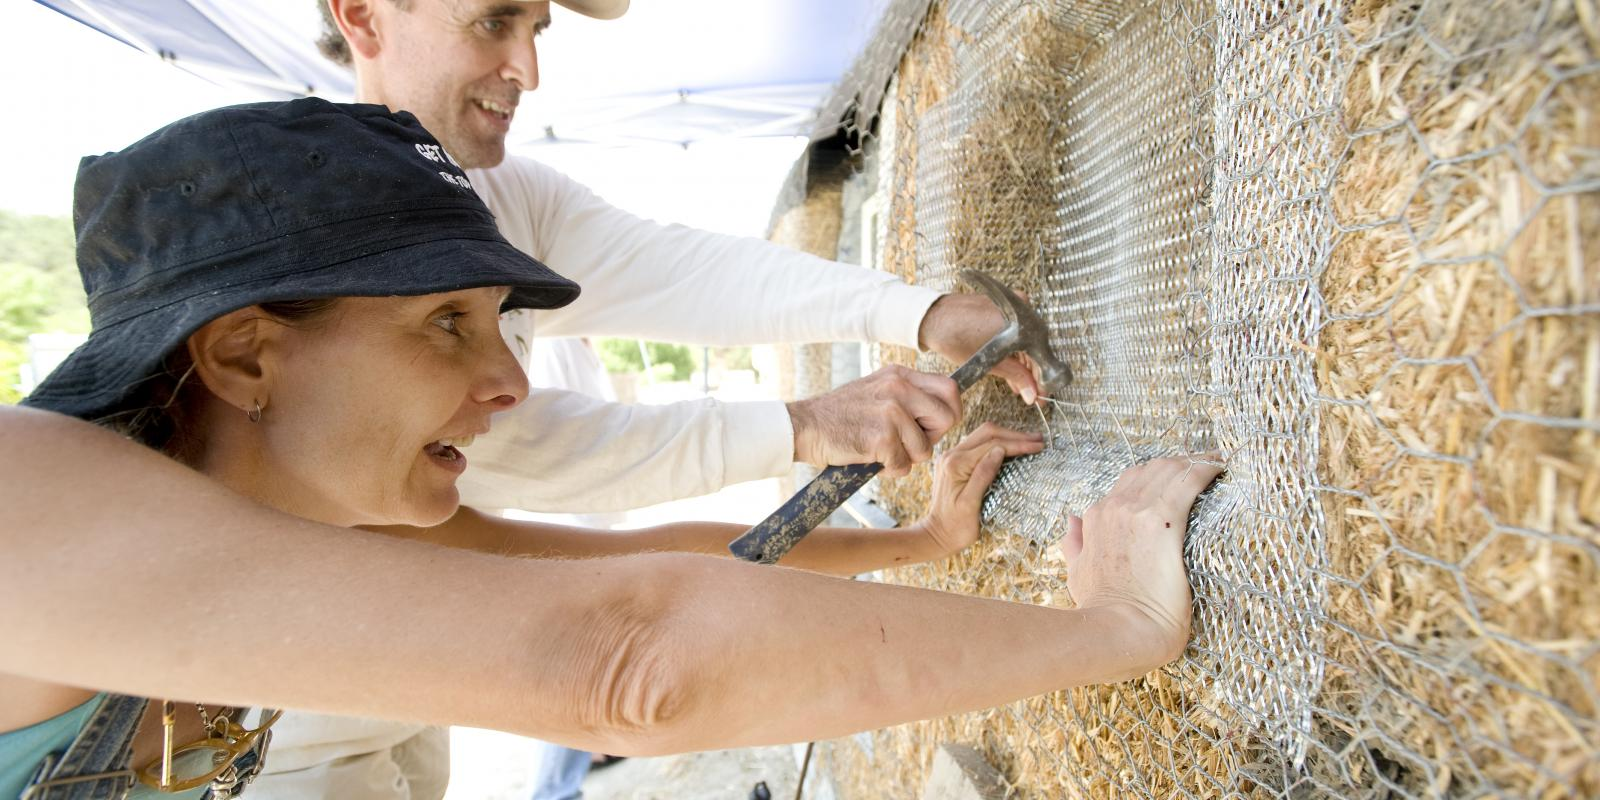 Sherrell Cuneo and Don Smith attatch chicken wire to a strawbale wall as part of The Solar Living Institute and Lyle Center's Sustainable Workshop, July 2008